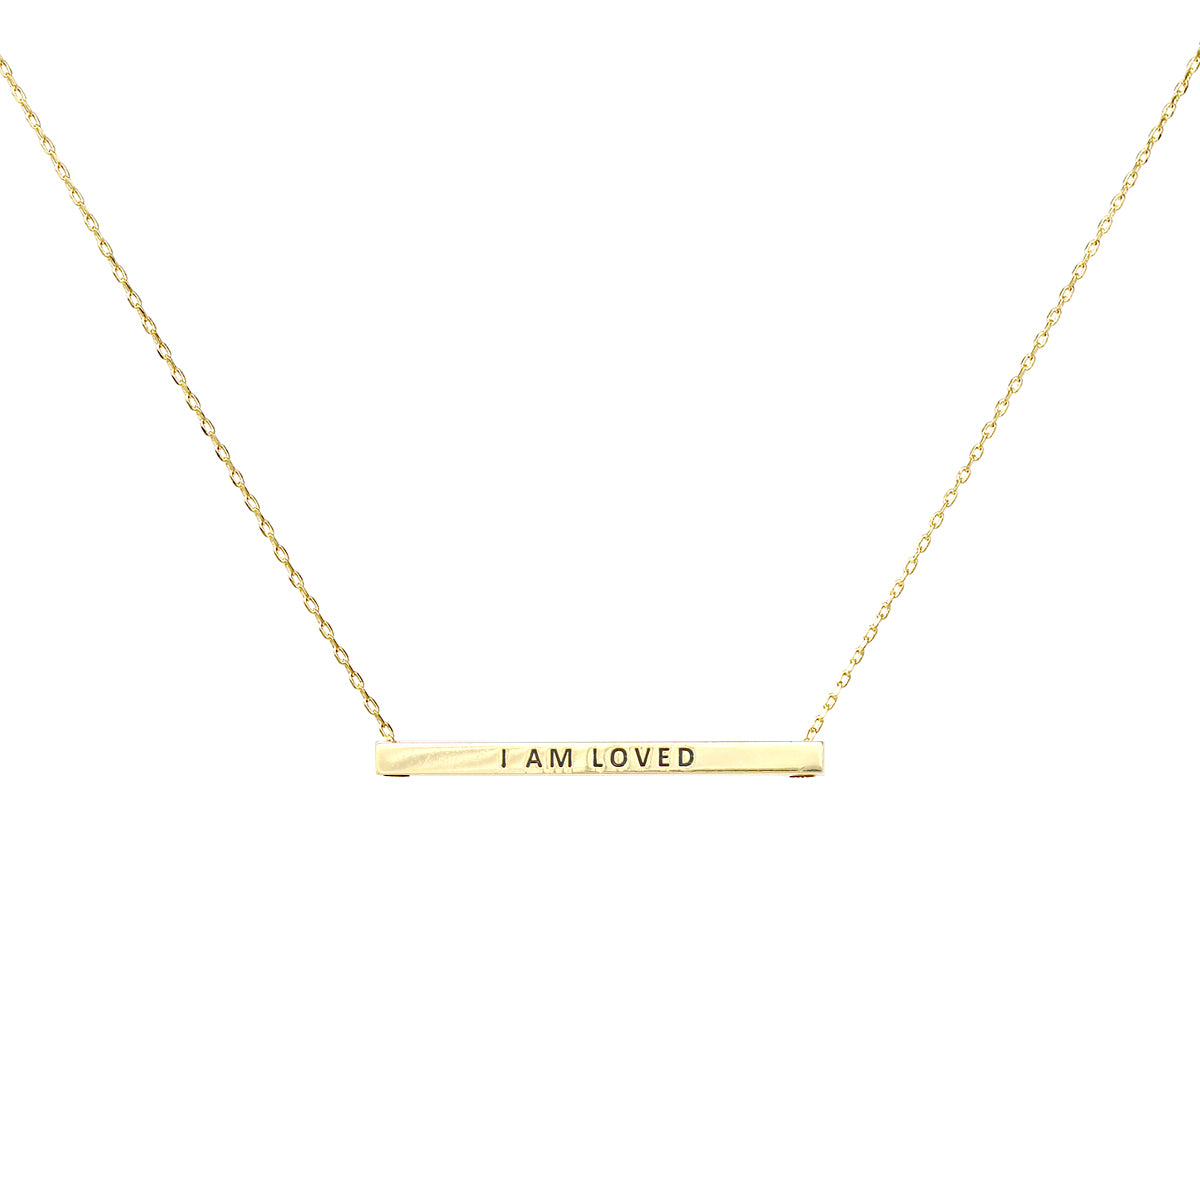 I AM LOVED Inspirational Message Pendant Short Necklace